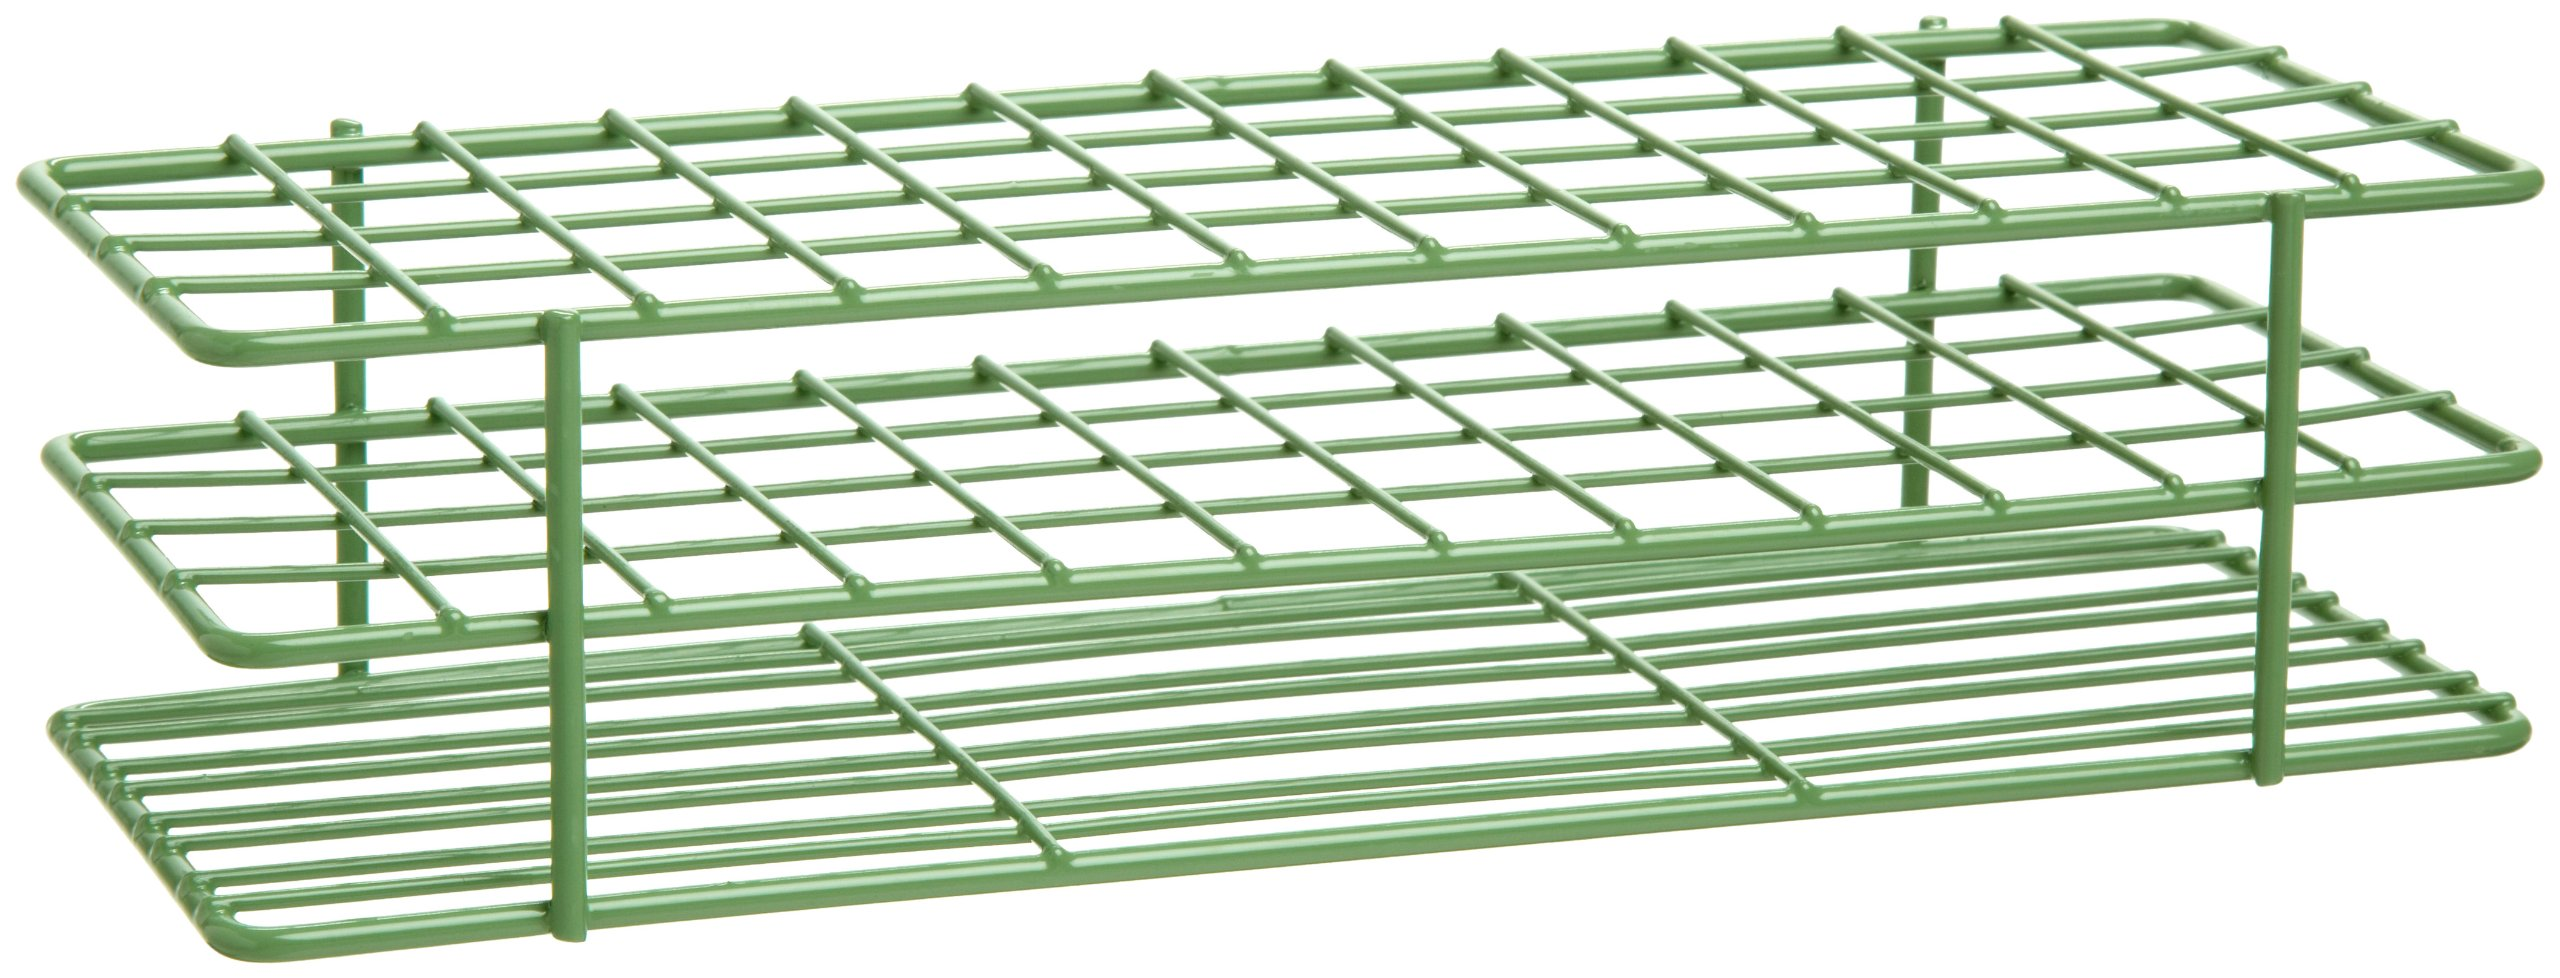 Bel-Art F18755-0000 Poxygrid Test Tube Rack; 13-16mm, 48 Places, 9¹/₂ x 3⁵/₈ x 2¹/₂ in., Green